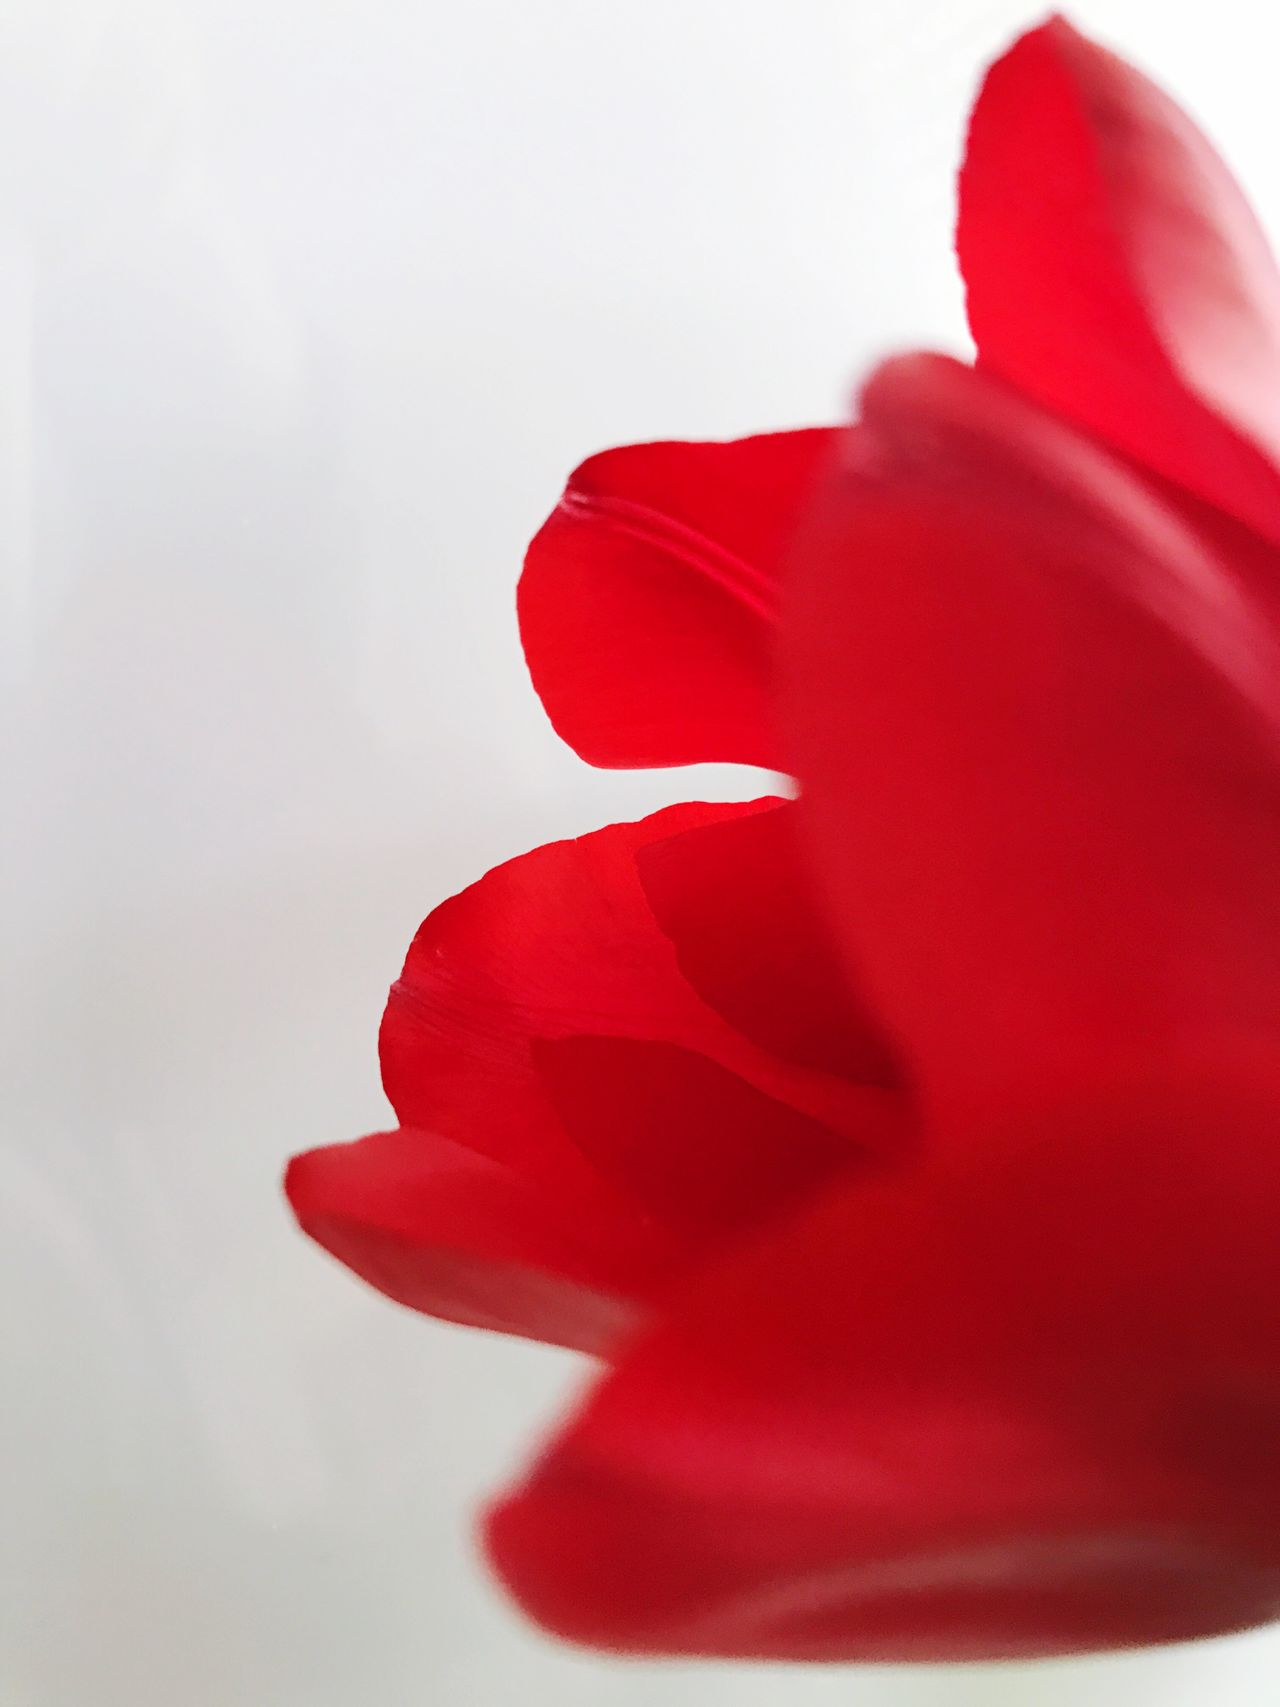 Flower Red Petal Nature Beauty In Nature Flower Head Fragility Close-up Growth Freshness No People White Background Minimal Minimalism Minimalist Red Indoors  Photooftheday Tulip Tulips Tulips🌷 Minimalobsession Minimalistic Minimalmood